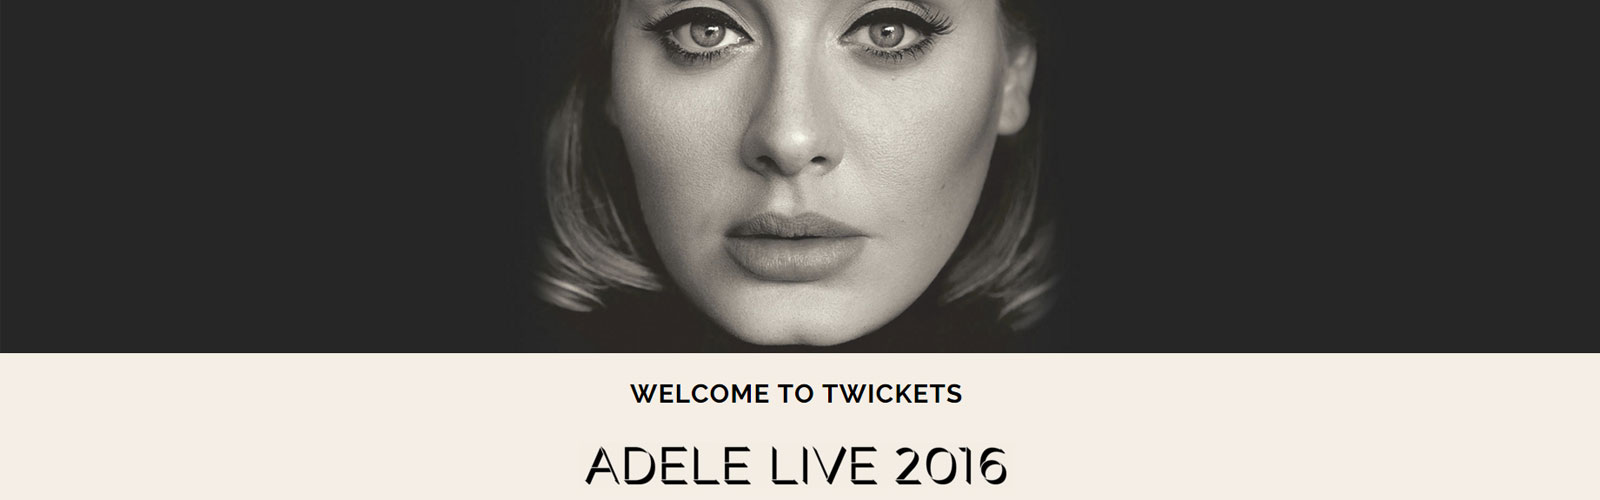 adele-tickets